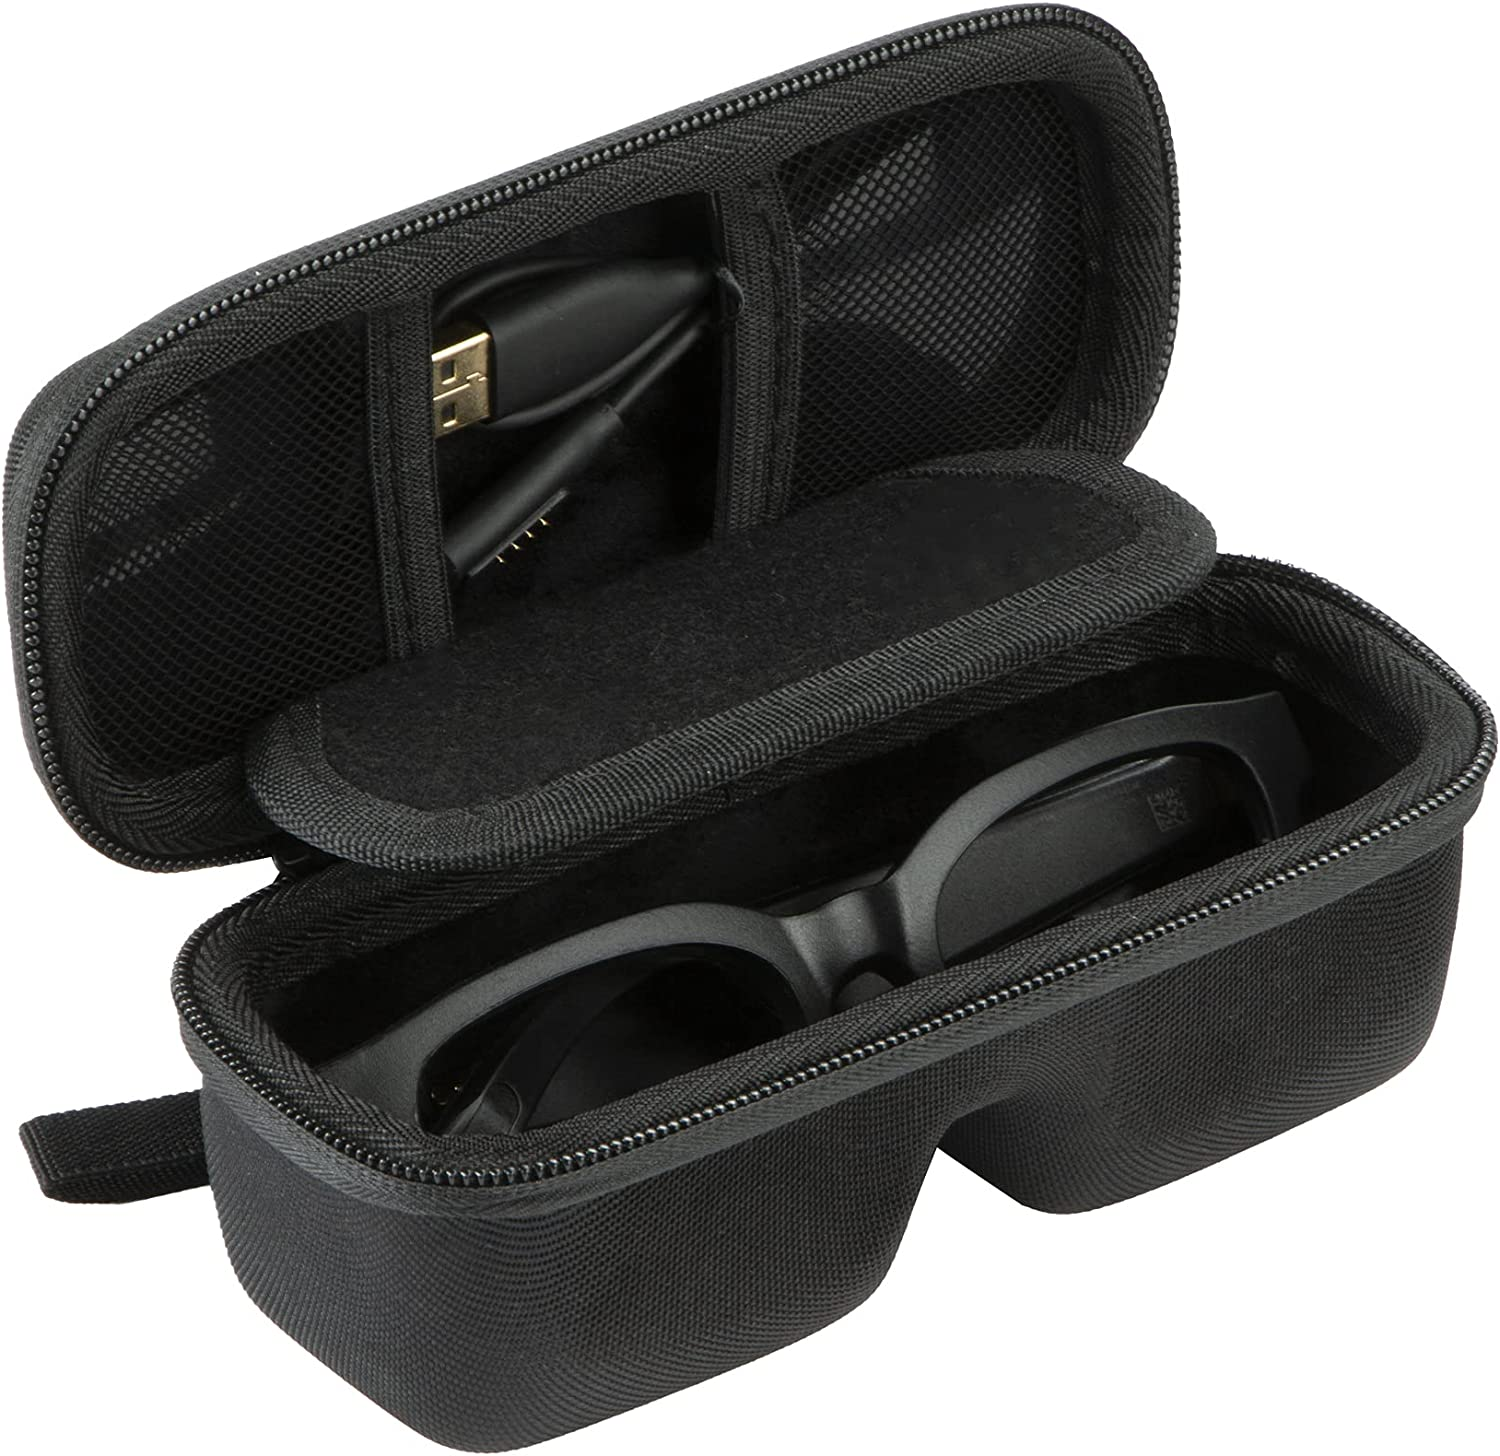 Khanka Hard Travel Case Replacement for Bose Frames Audio Sunglasses with Open Ear HeadphonesBose : Frames Alto/Frames Tenor/Frames Soprano/Frames Rondo Bluetooth Audio Sunglasses